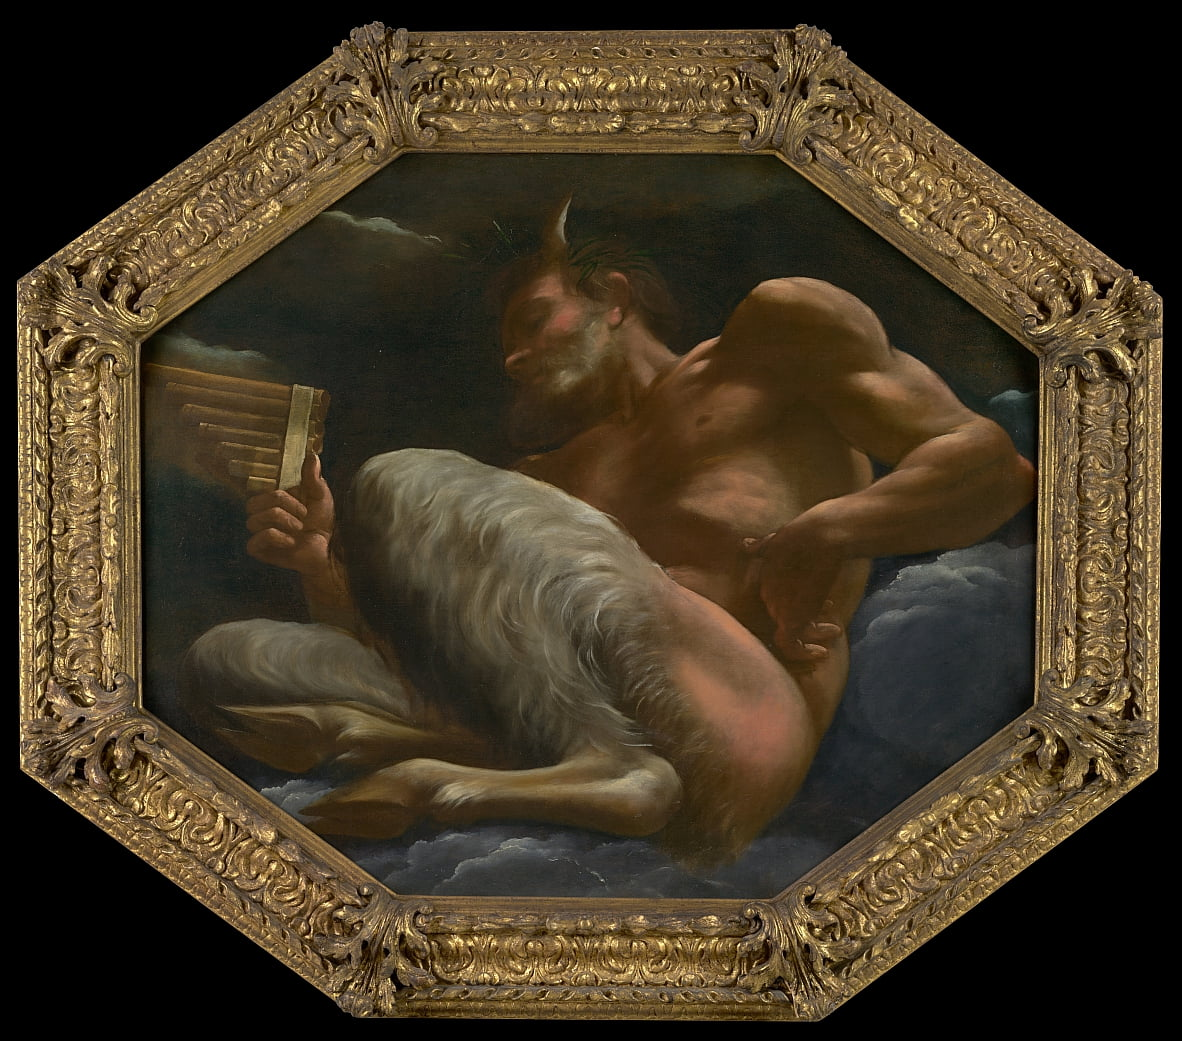 Pan de Annibale Carracci